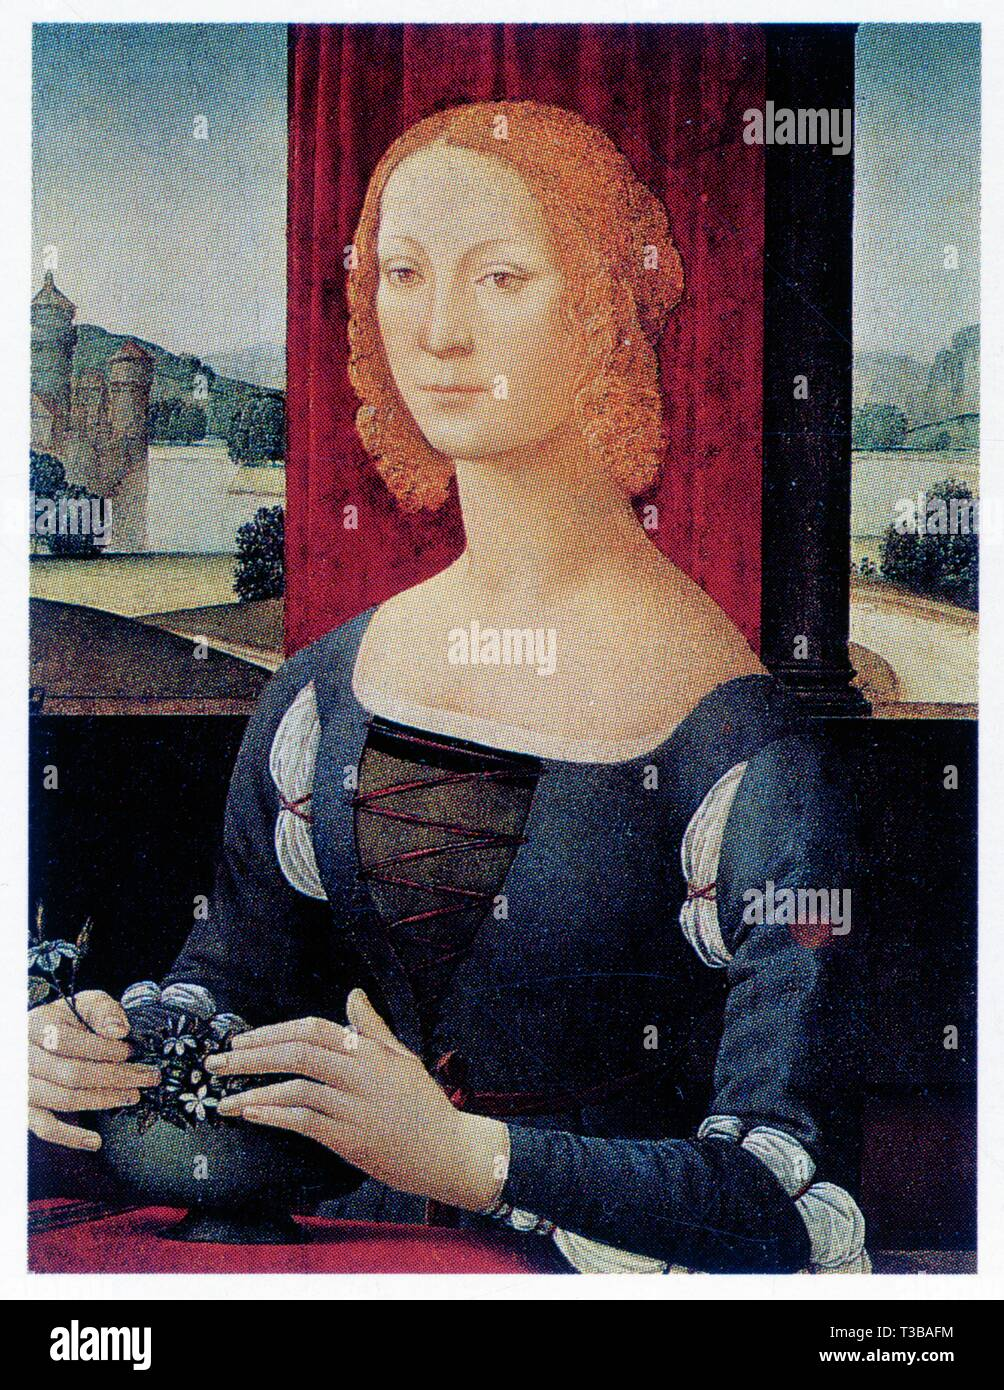 LORENZO DI CREDI.PORTRAIT OF A WOMAN.1490.TEMPERA ON WOOD.75 CM X 54 CM - Stock Image